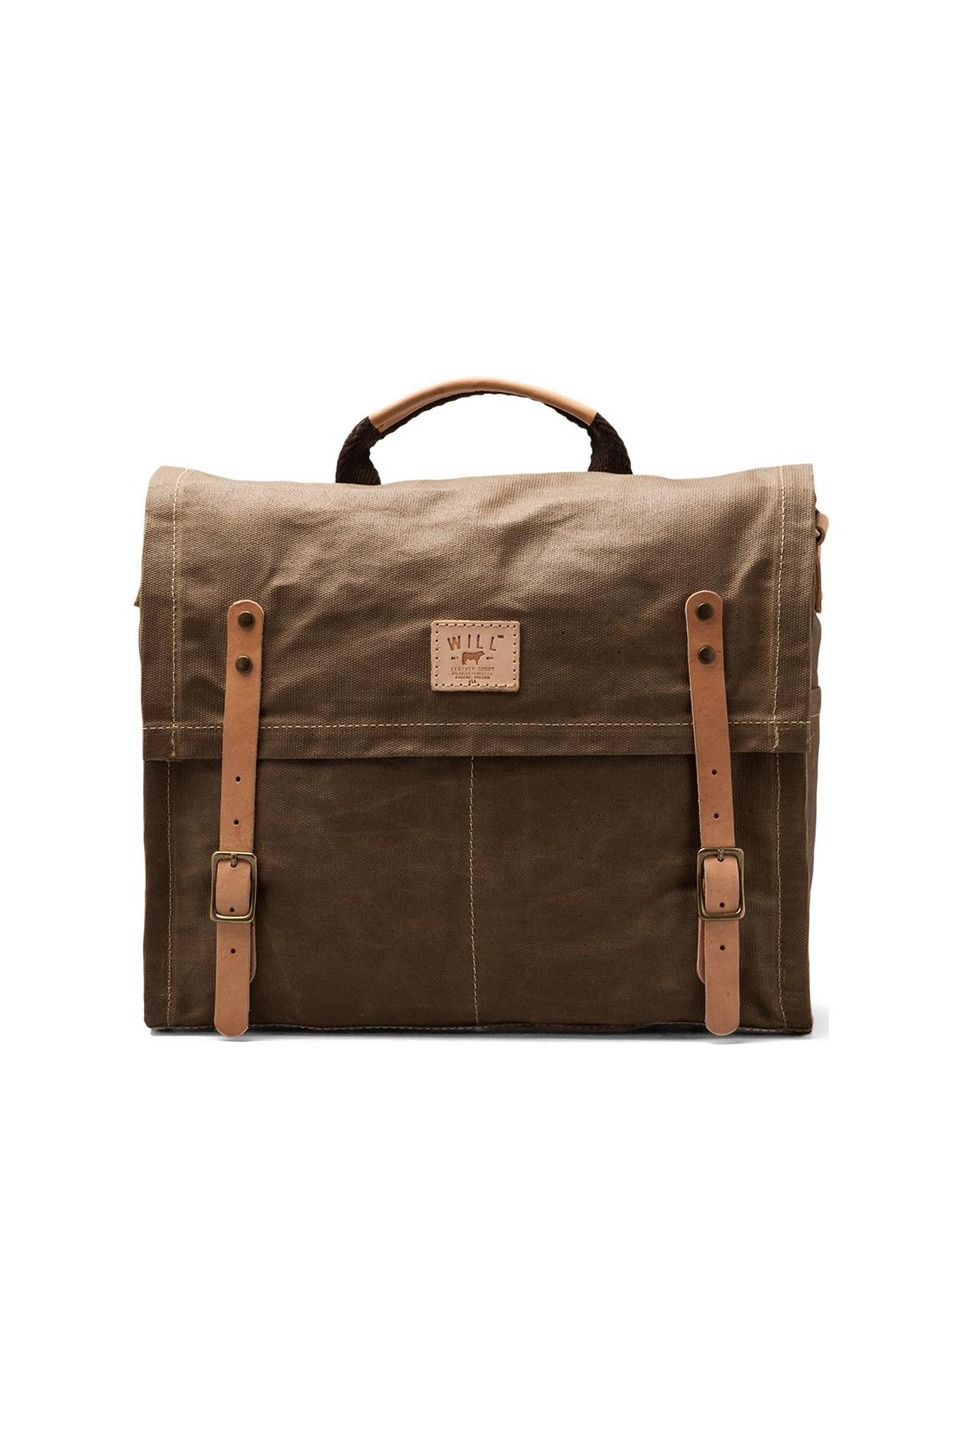 WILL Leather Goods Wax Coated Canvas Messenger en kaki